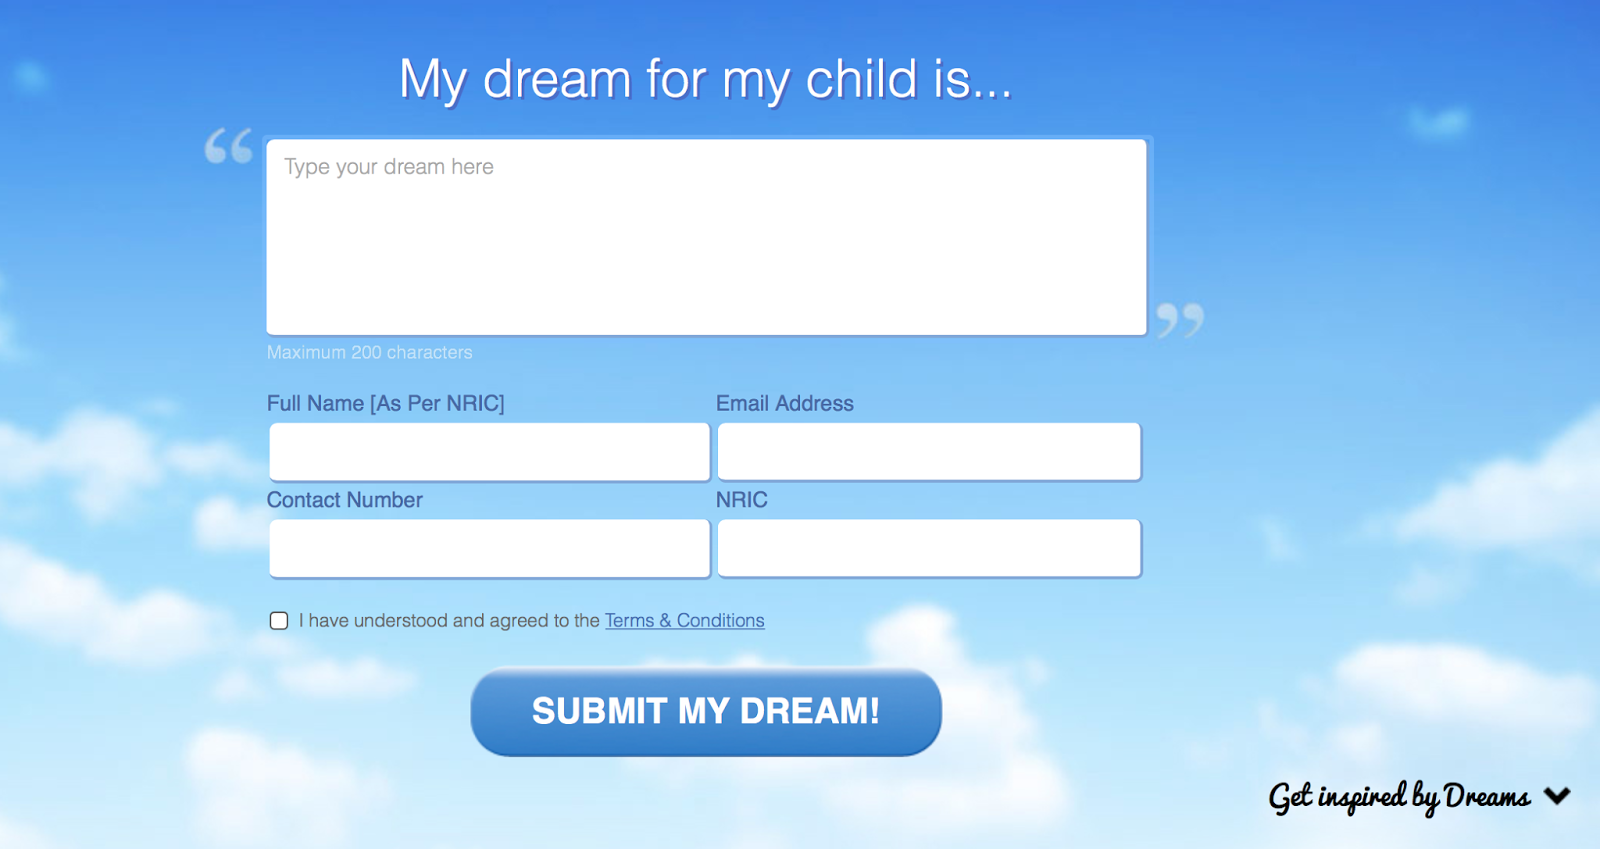 AmMetLife is having a campaign to hear what is Malaysia parents' dreams for their children.